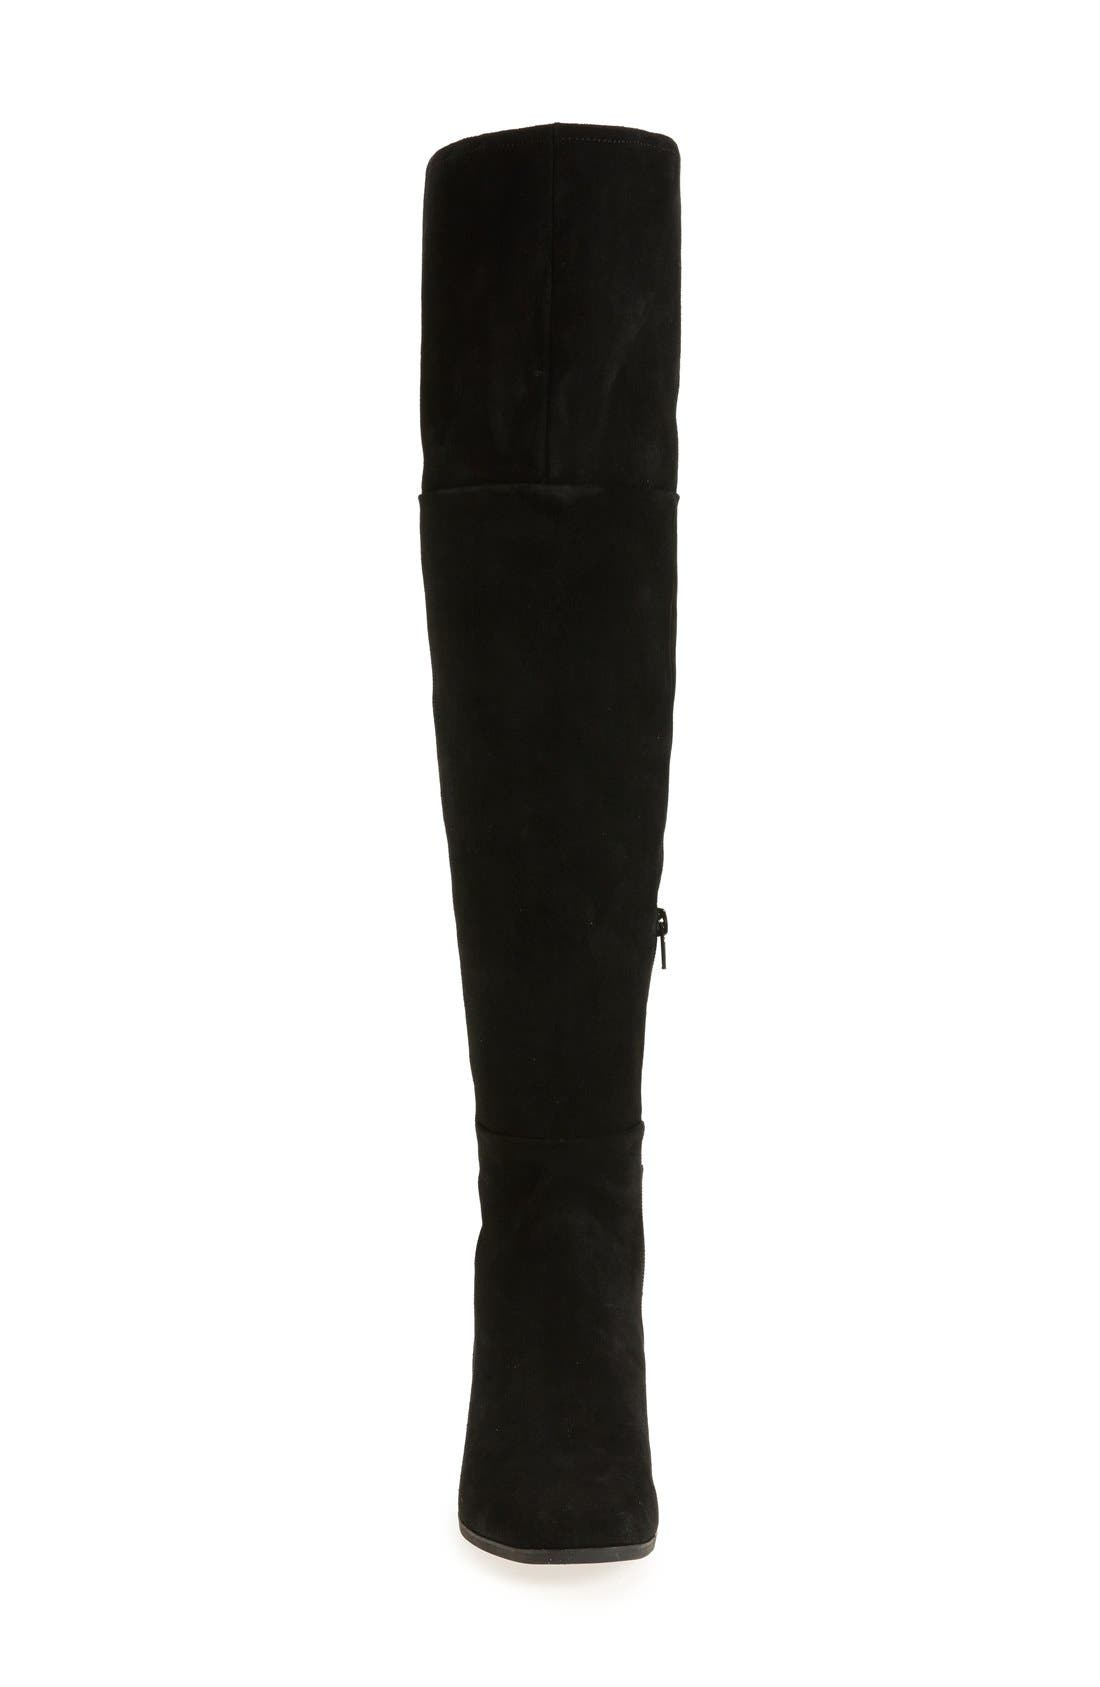 Alternate Image 3  - Steven by Steve Madden Phaser Over the Knee Boot (Women)